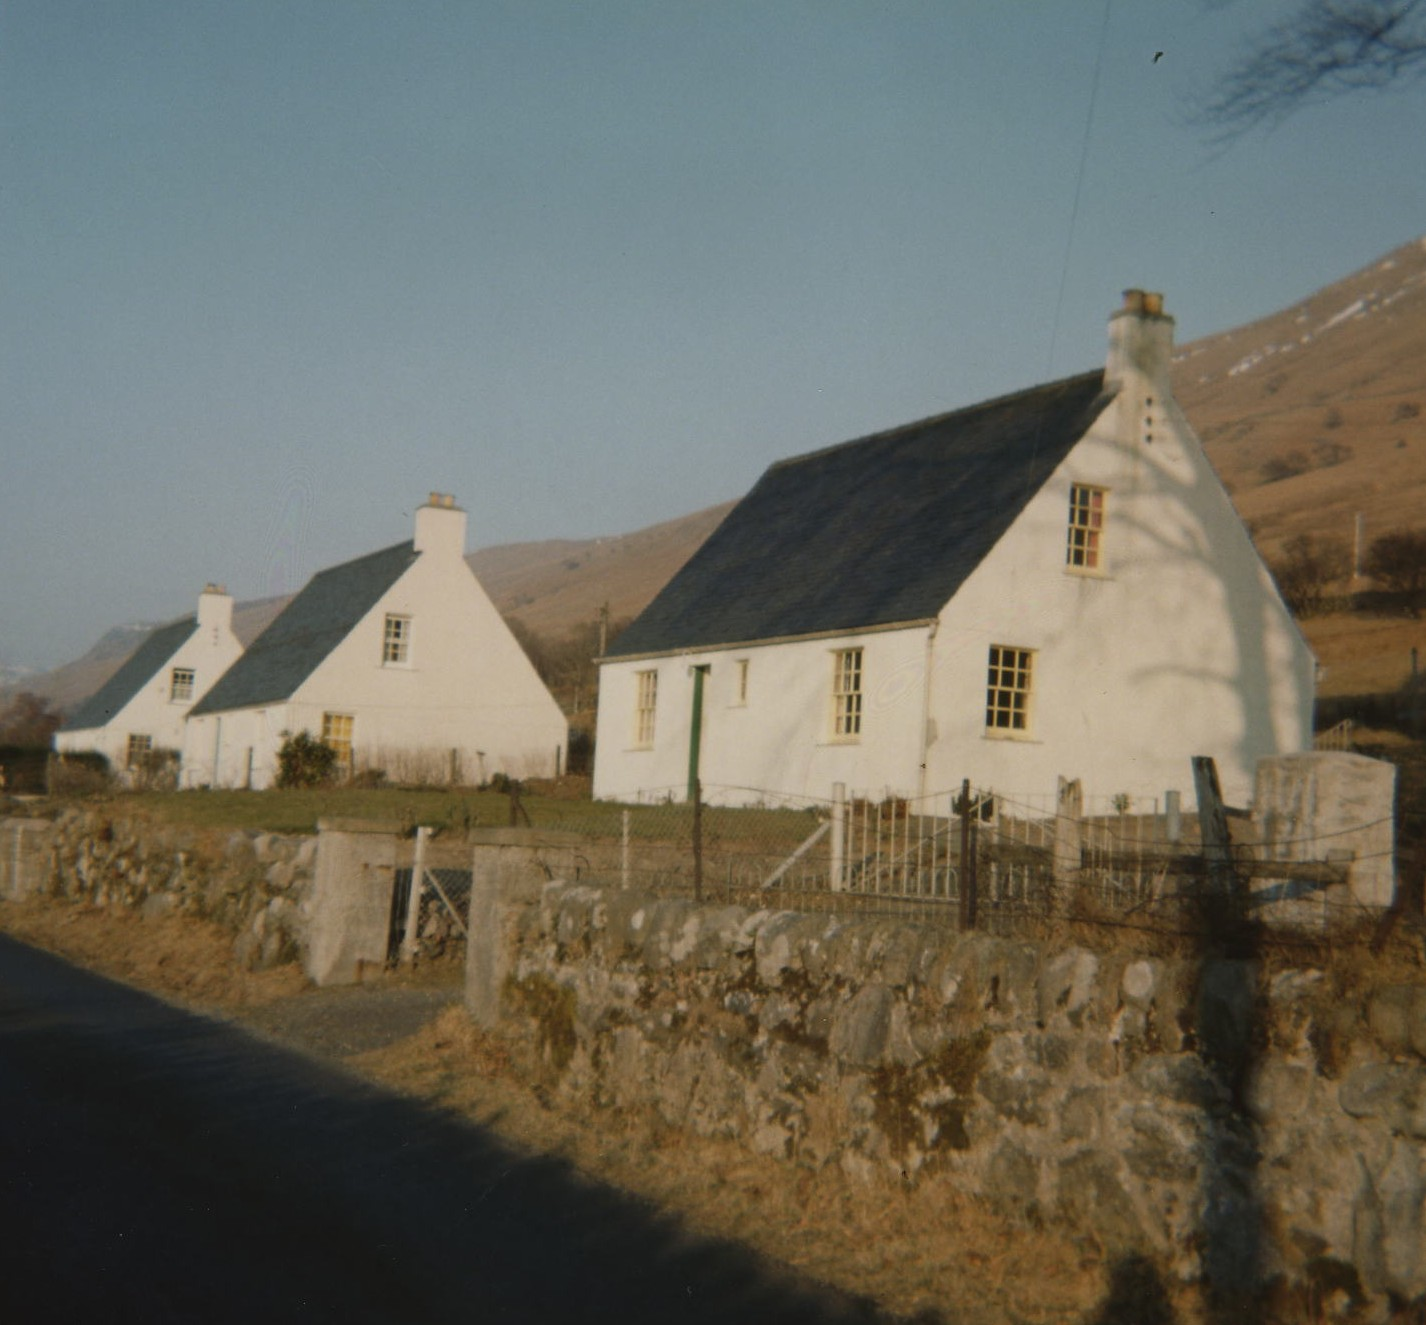 Kilmorich School House